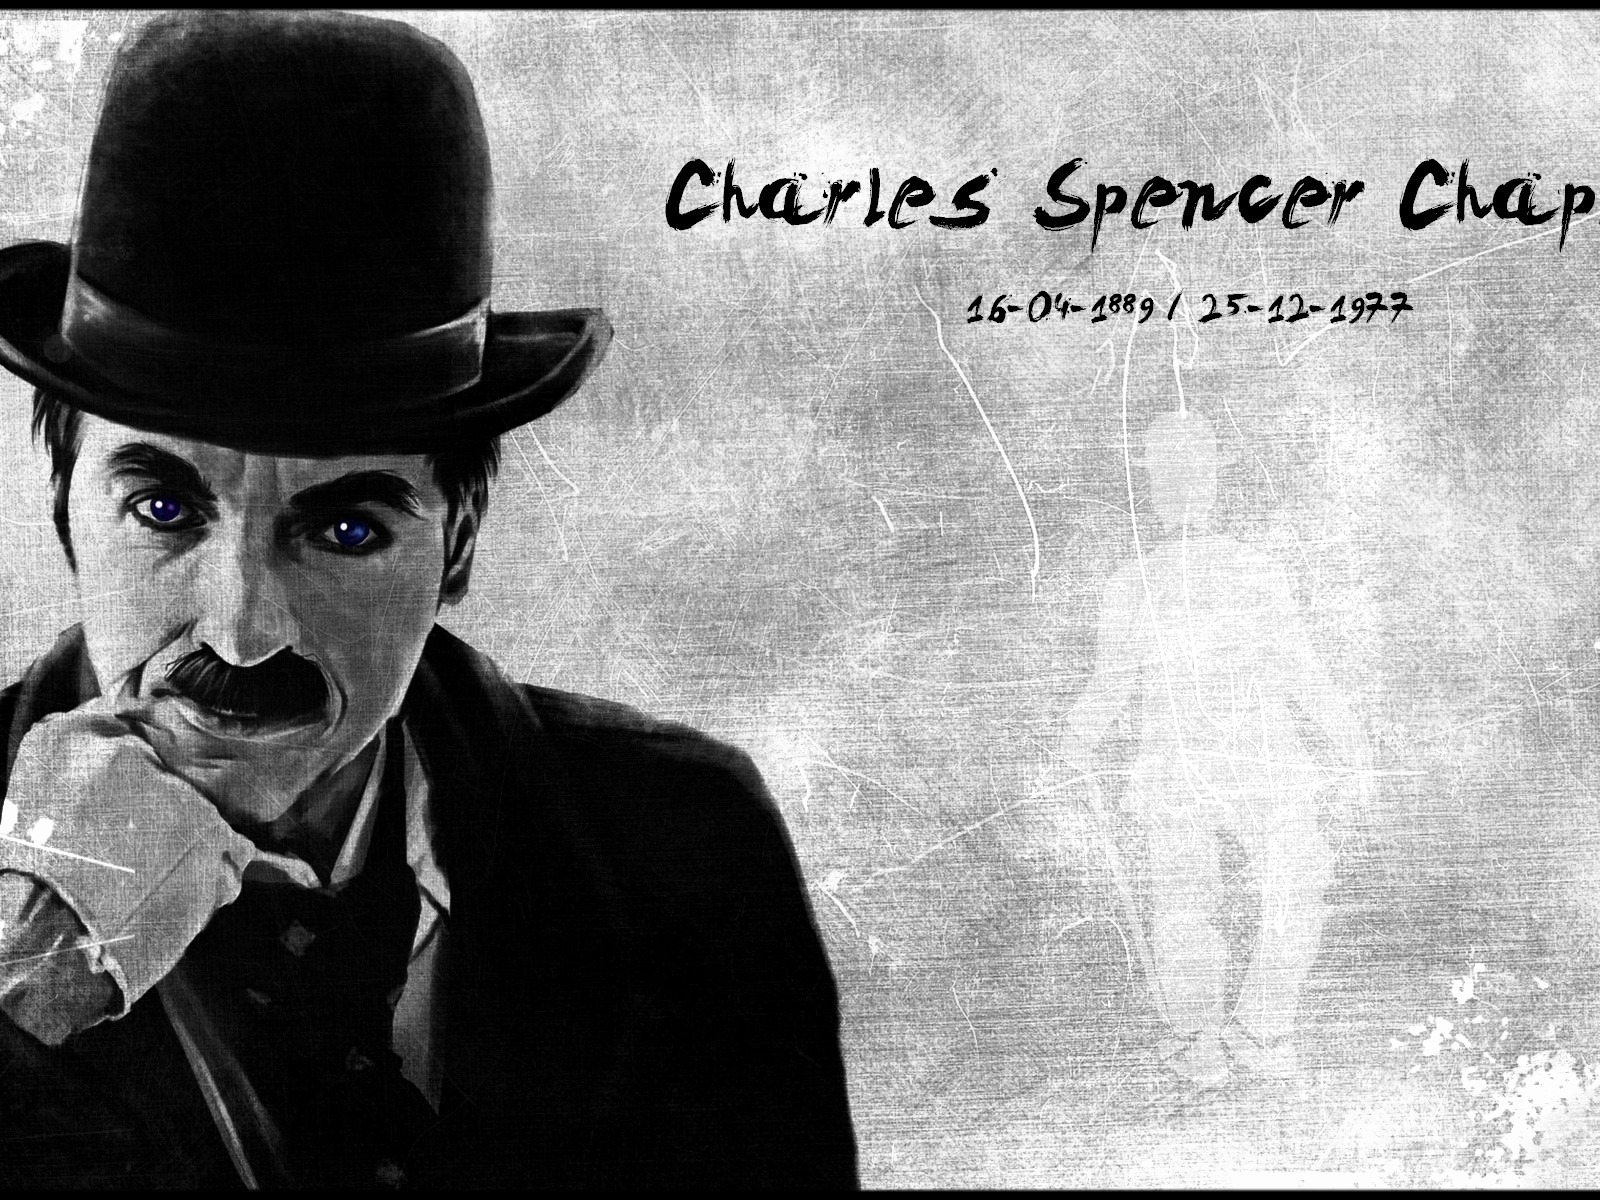 Charles Chaplin for 1600 x 1200 resolution